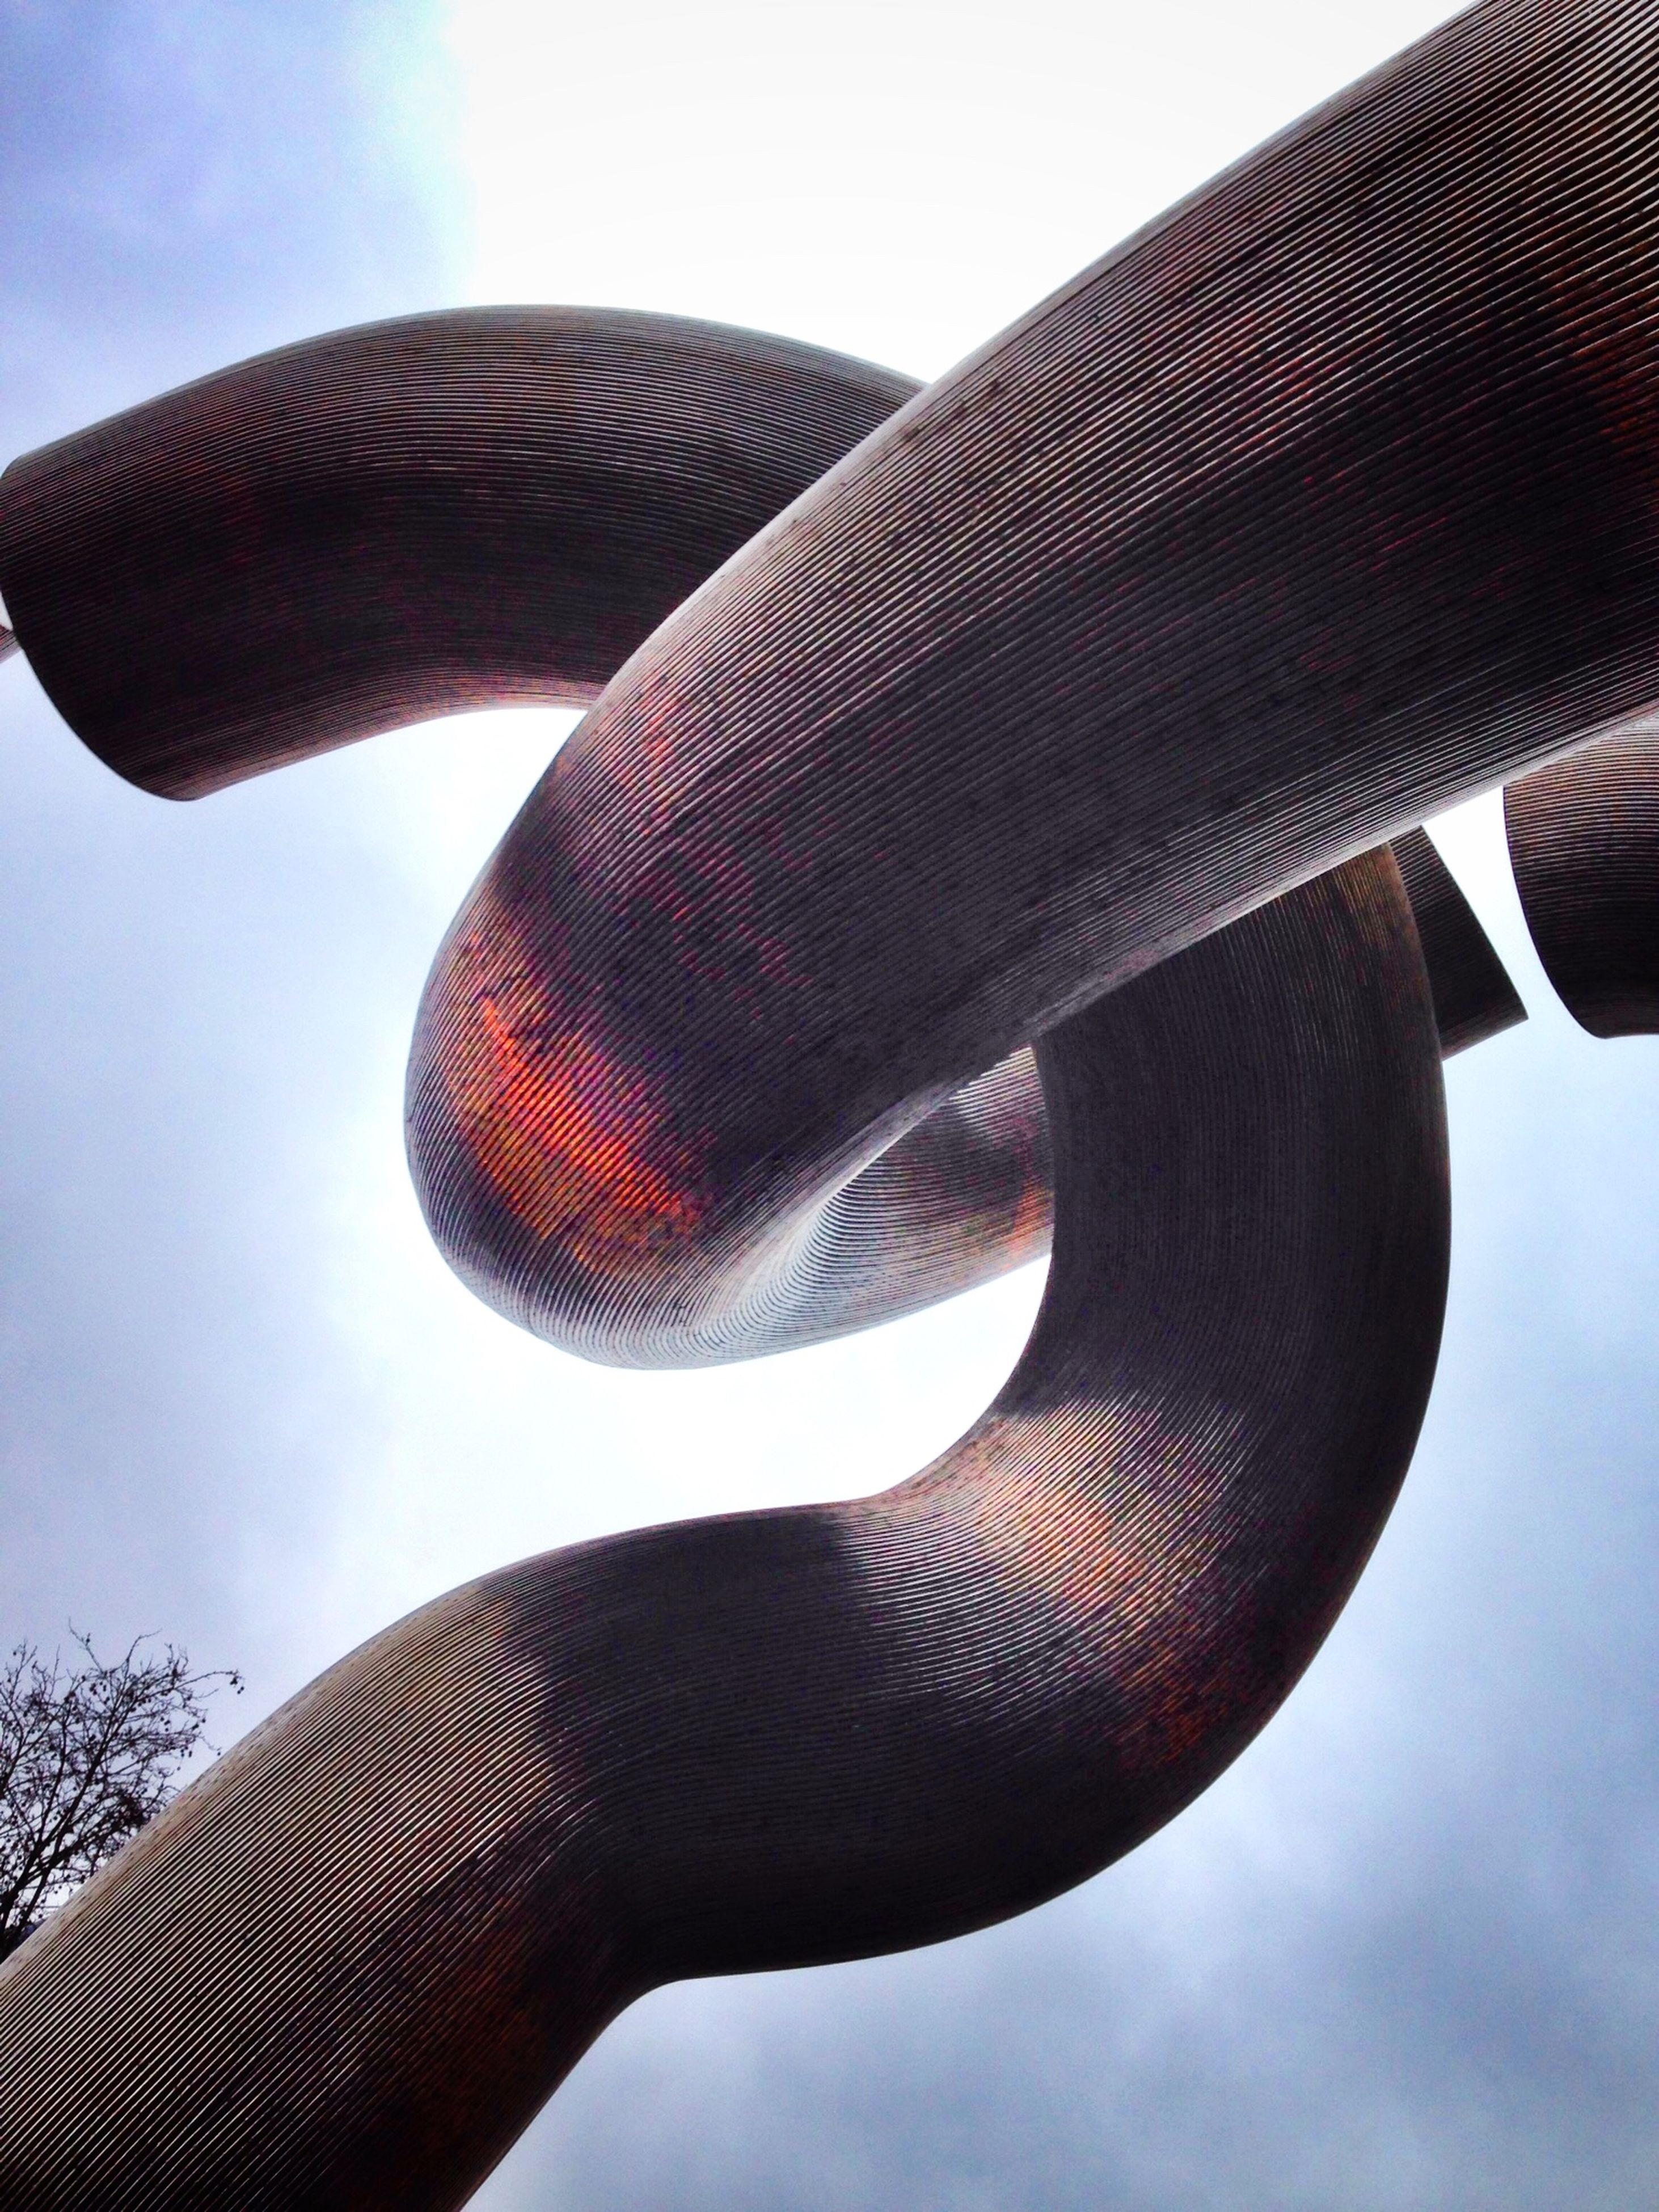 low angle view, sky, blue, sunlight, no people, outdoors, close-up, part of, day, pattern, spiral, nature, clear sky, one animal, animal themes, cloud - sky, sculpture, animals in the wild, metal, cloud